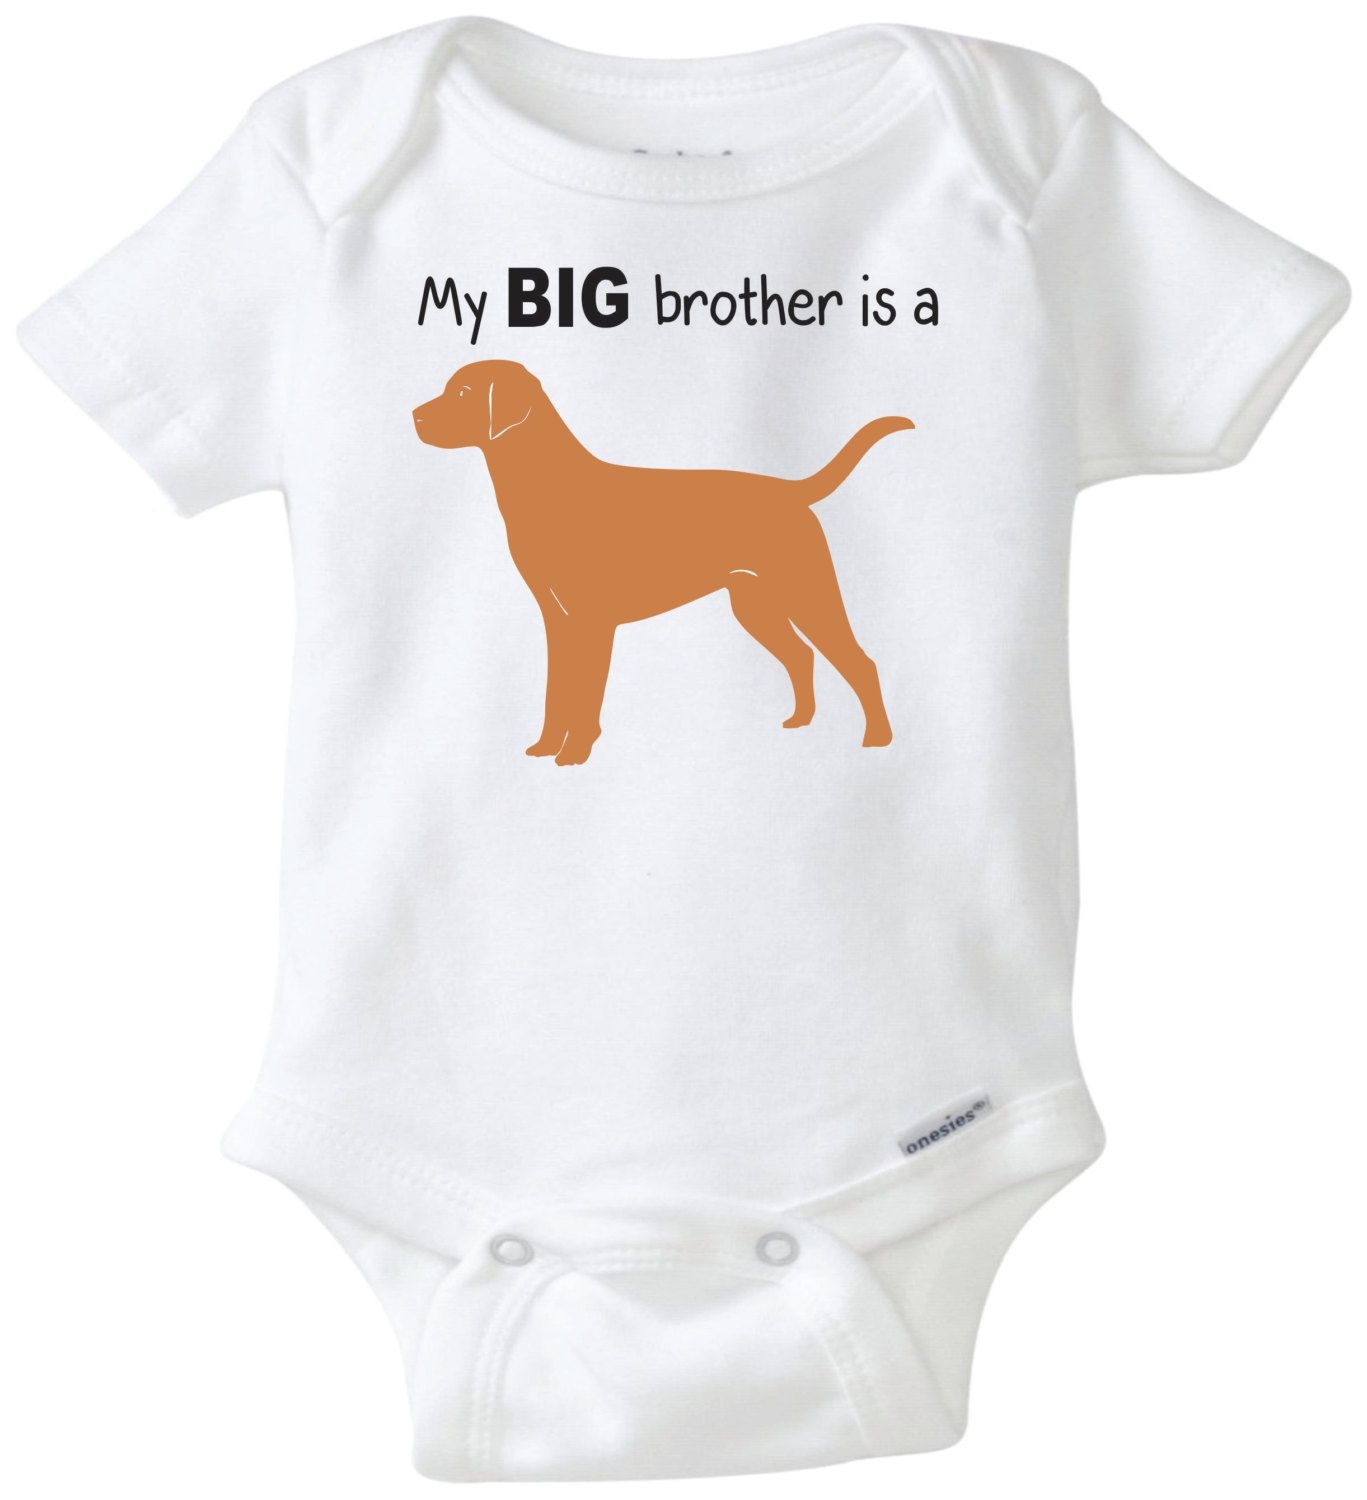 My Big brother is a Golden Lab baby onesie personalized sibling